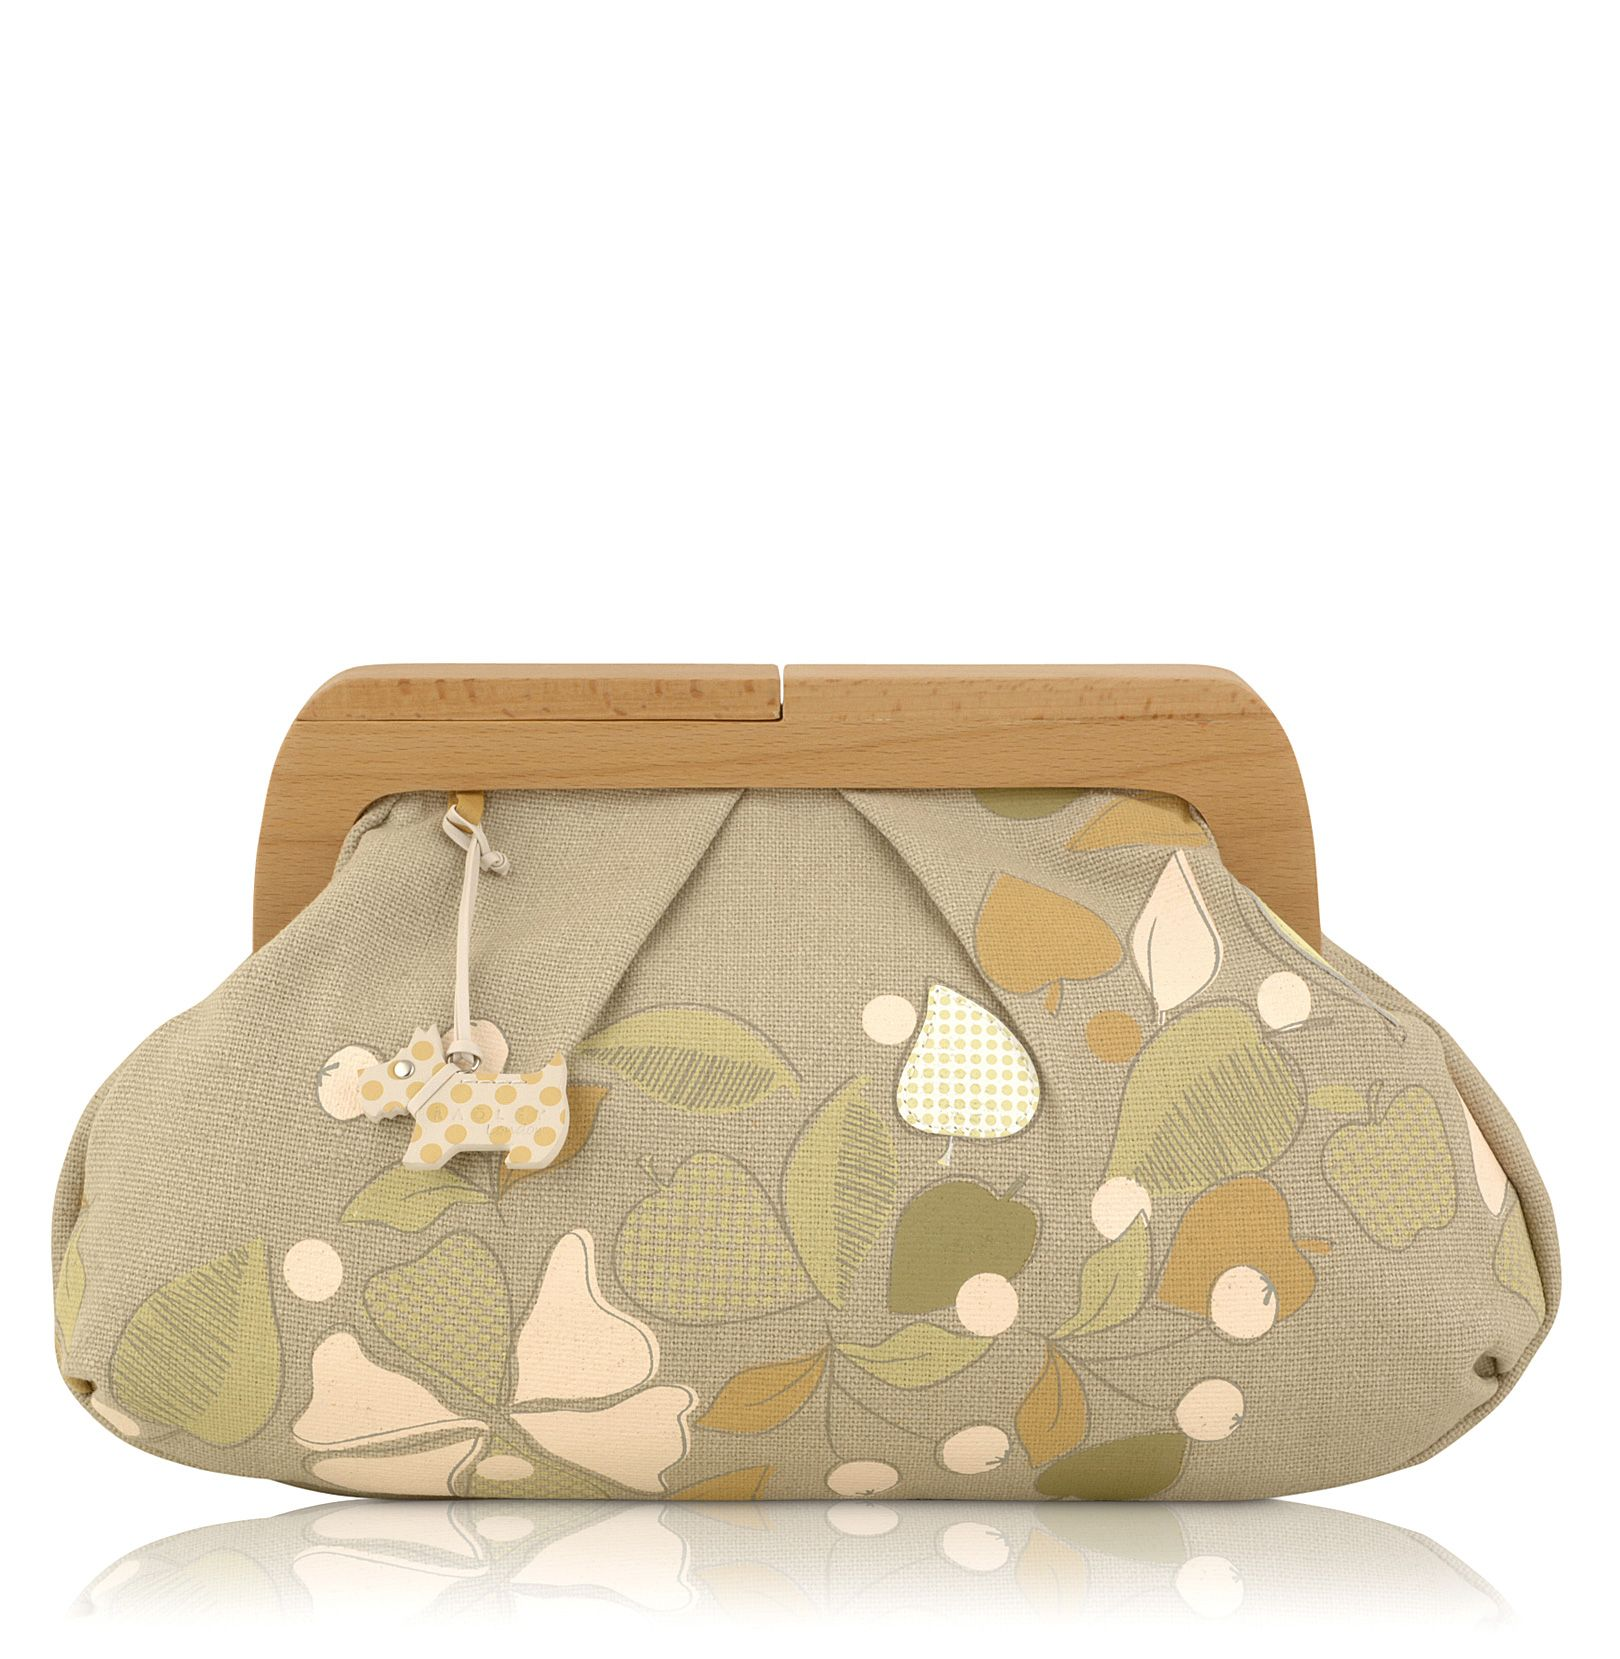 Woodstock Oversized frame clutch